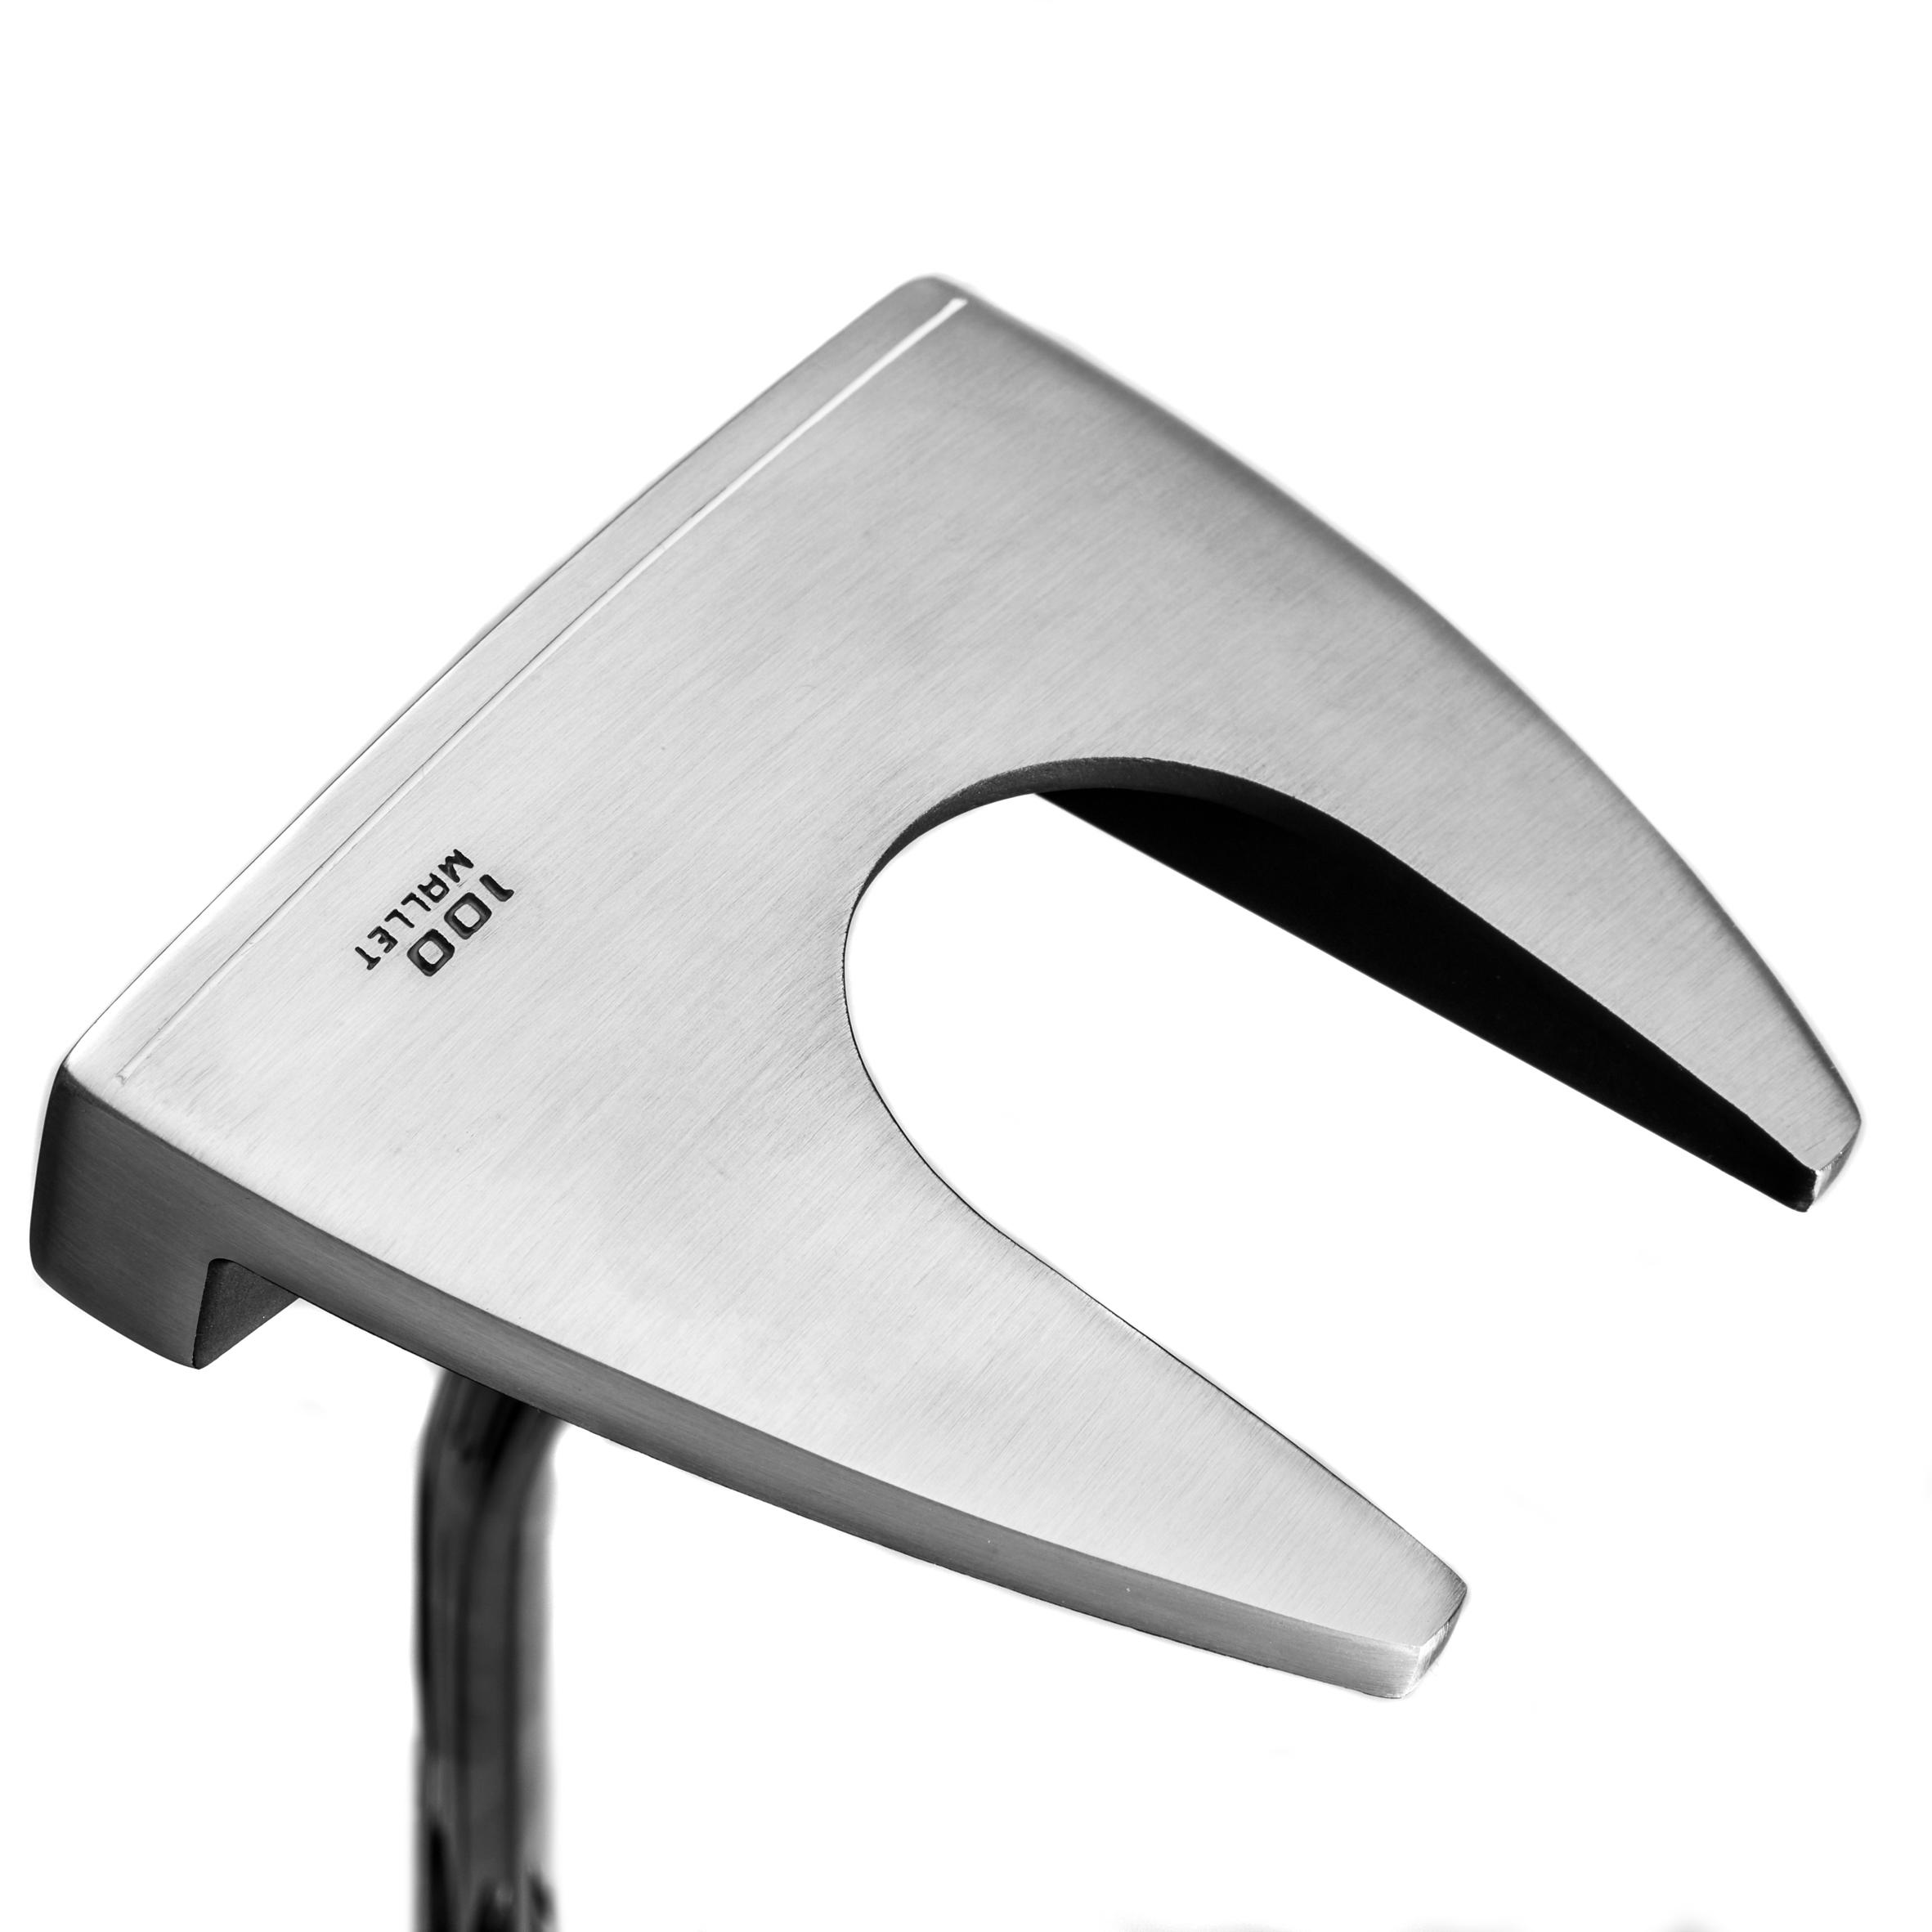 100 34 Adult Golf 34_QUOTE_ RH Putter